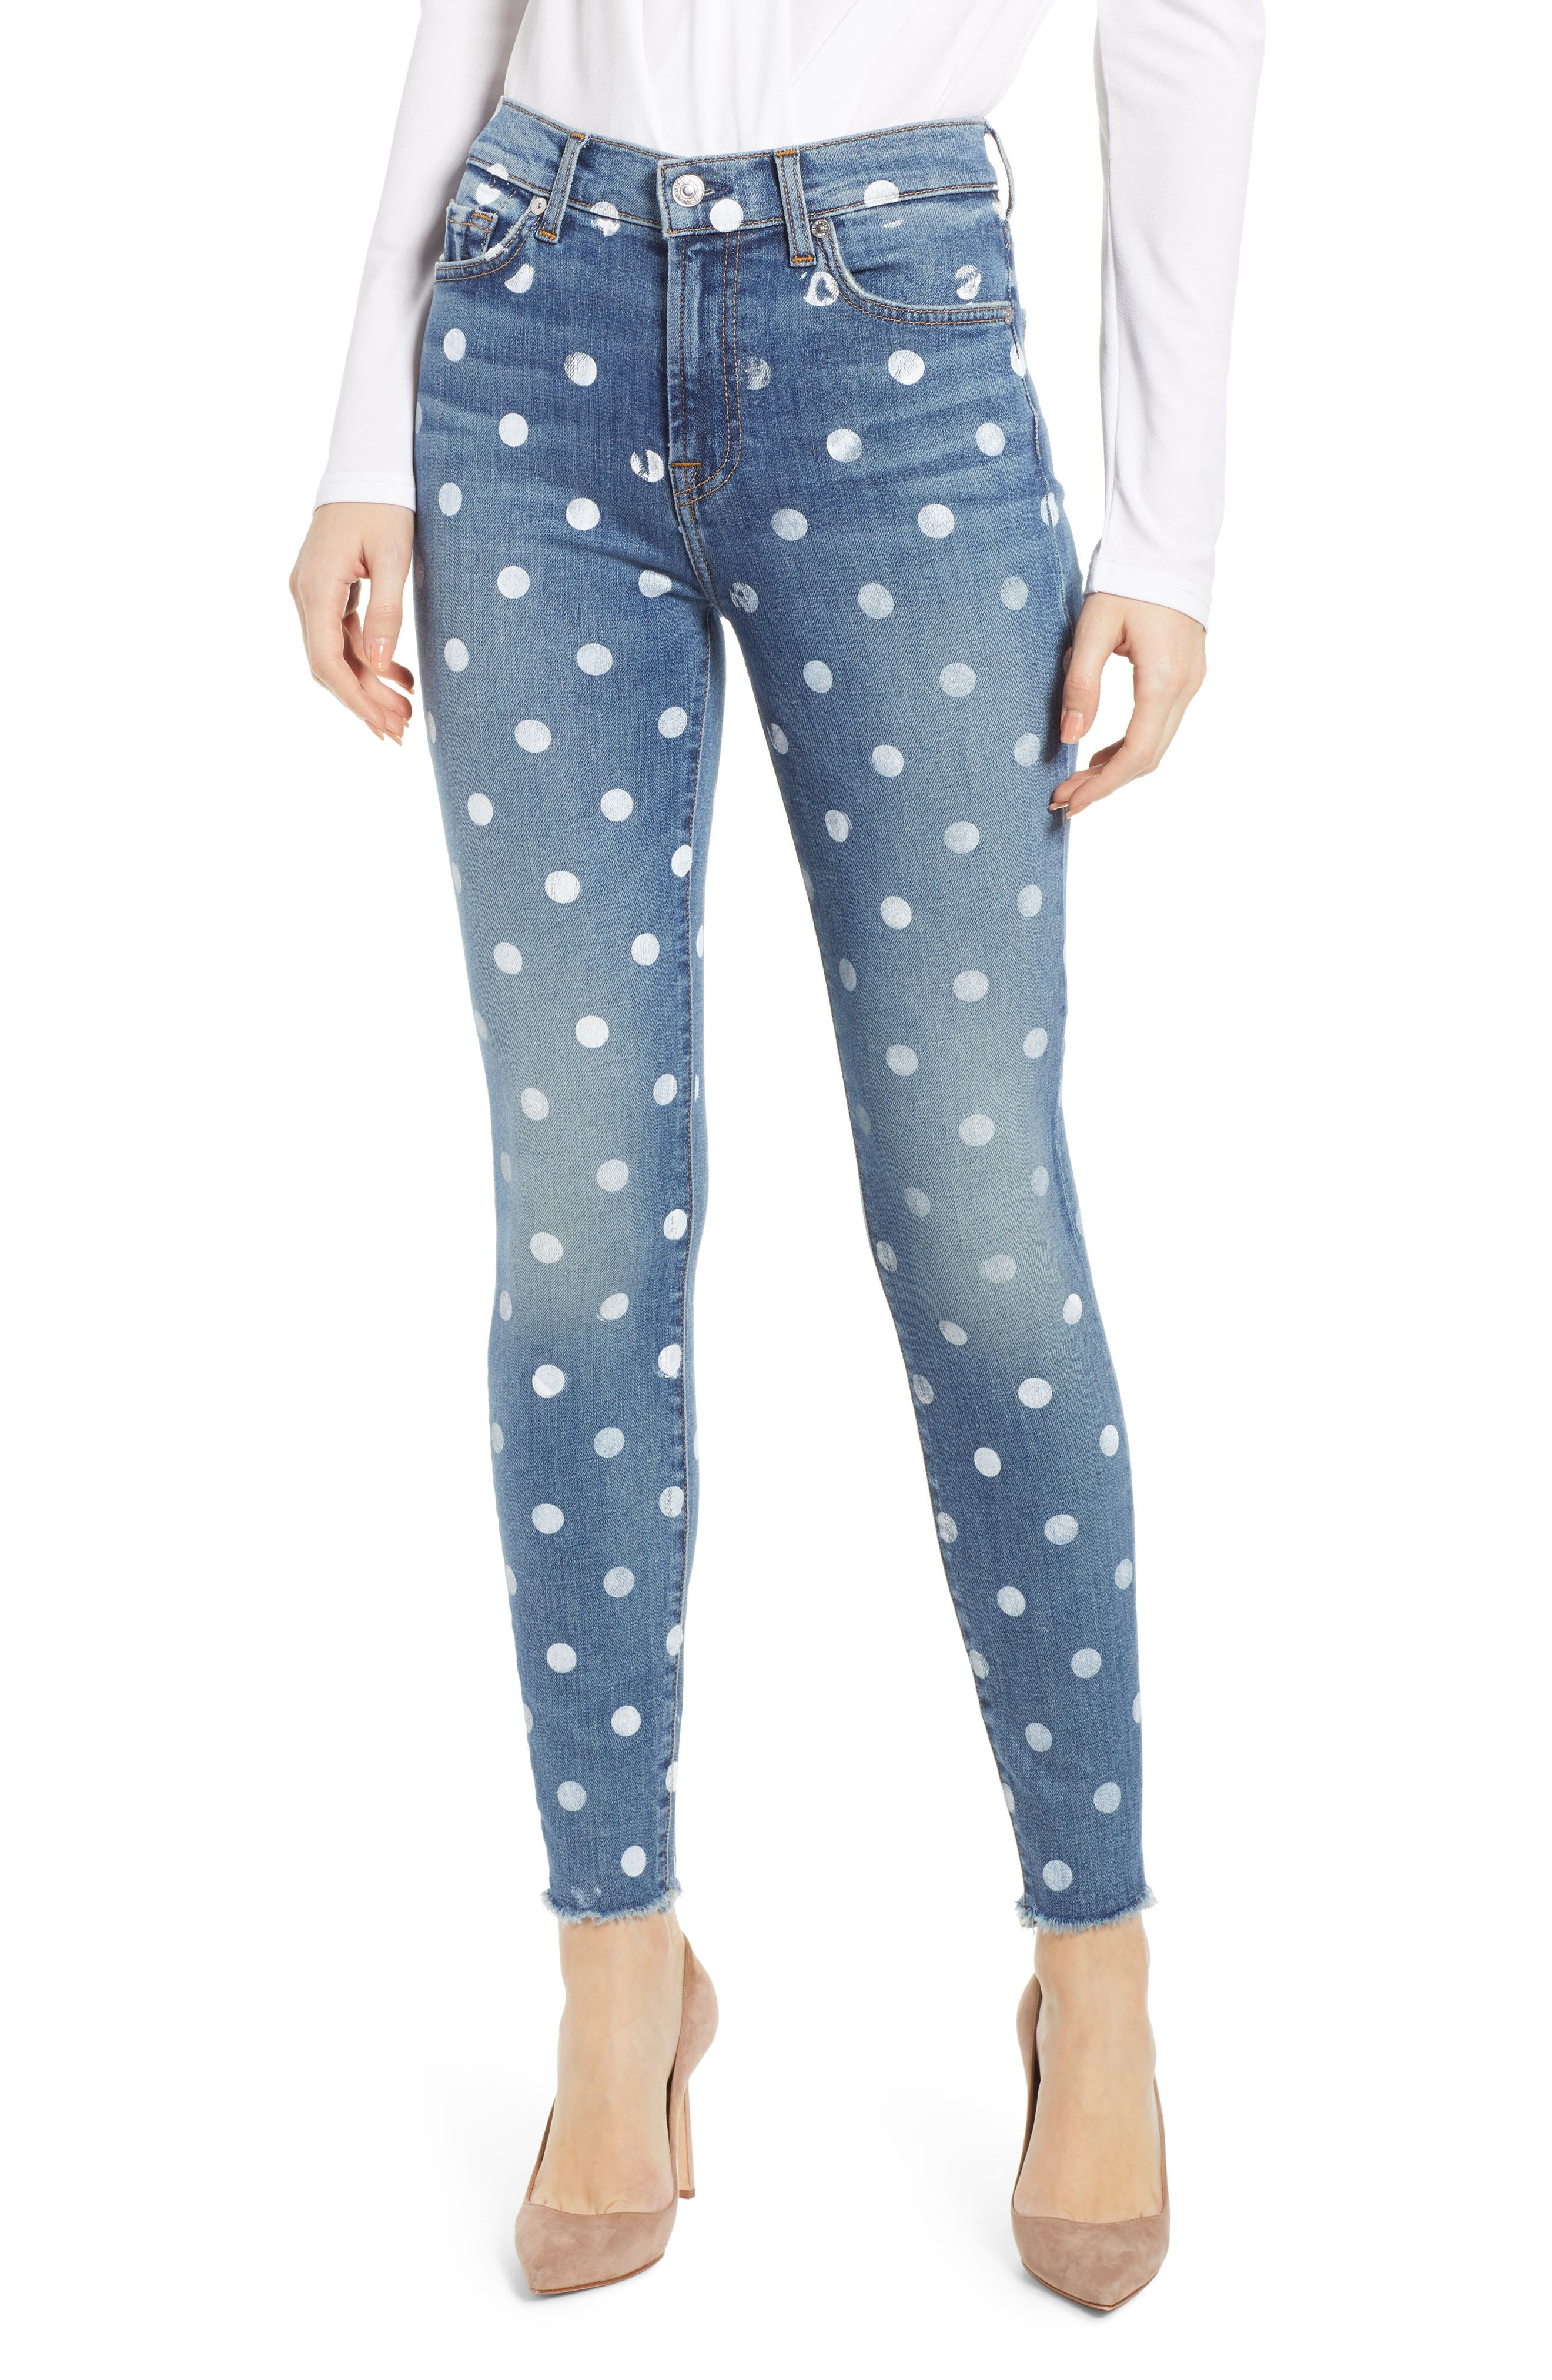 7 FOR ALL MANKIND<SUP>®</SUP> Polka Dot High Waist Ankle Skinny Jeans, Main, color, RIDGEMONT VINTAGE